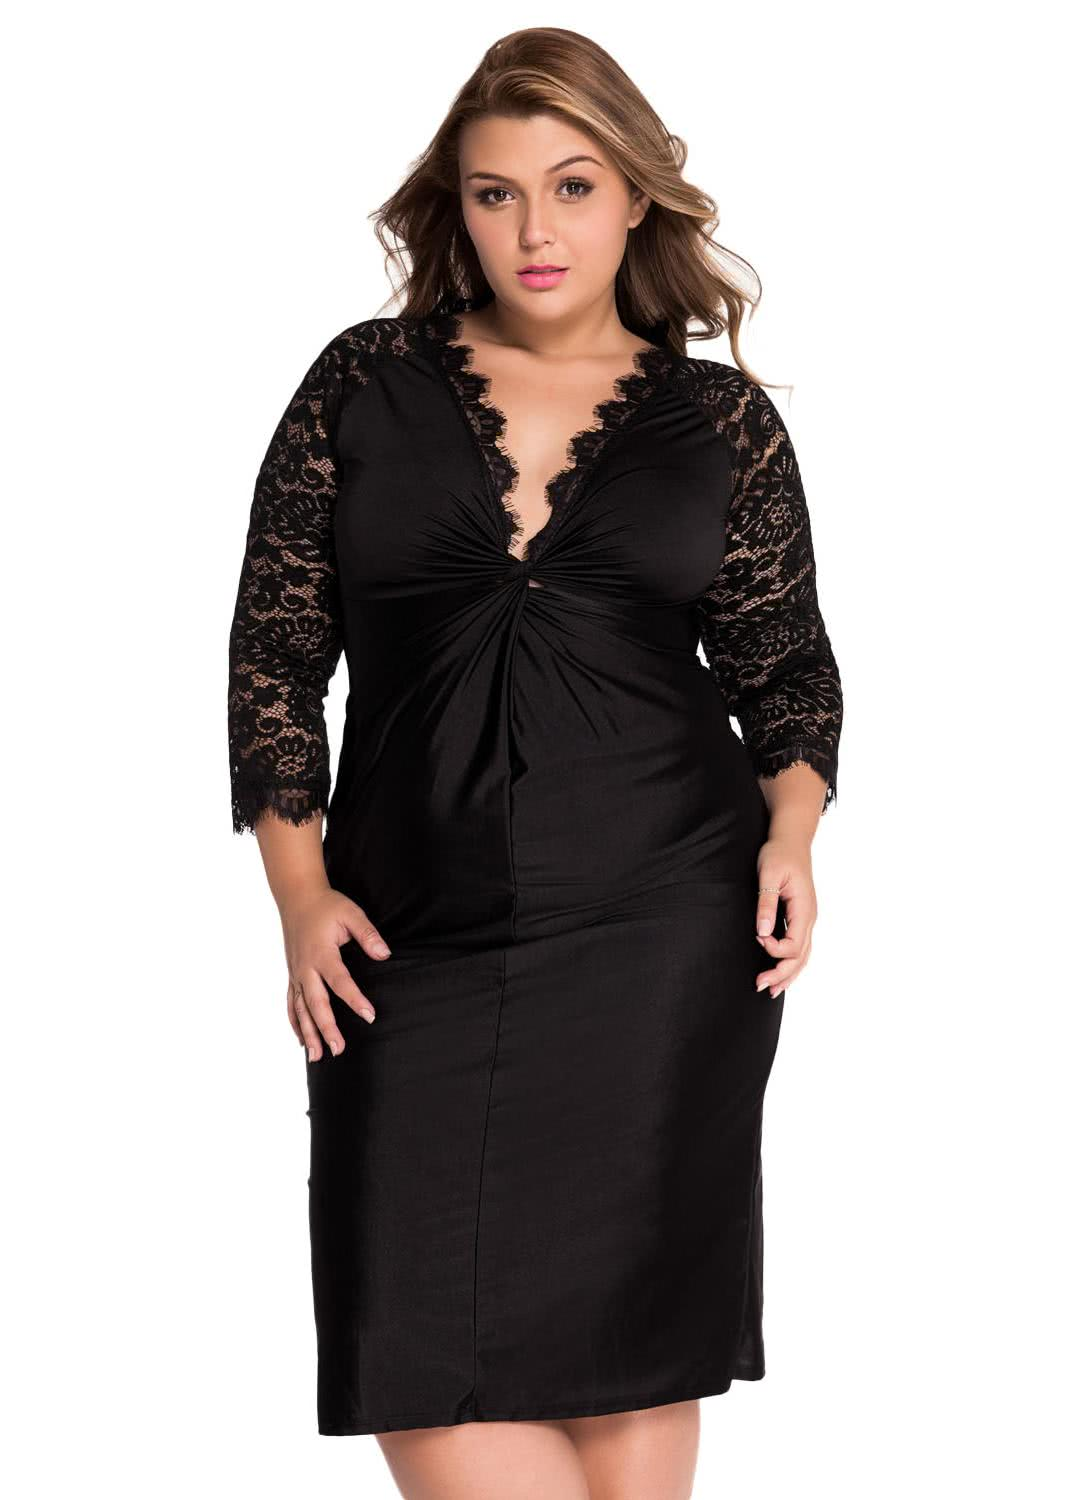 Black xxl plus size cocktail dress with lace sleeves chicuu for Cocktail xxl